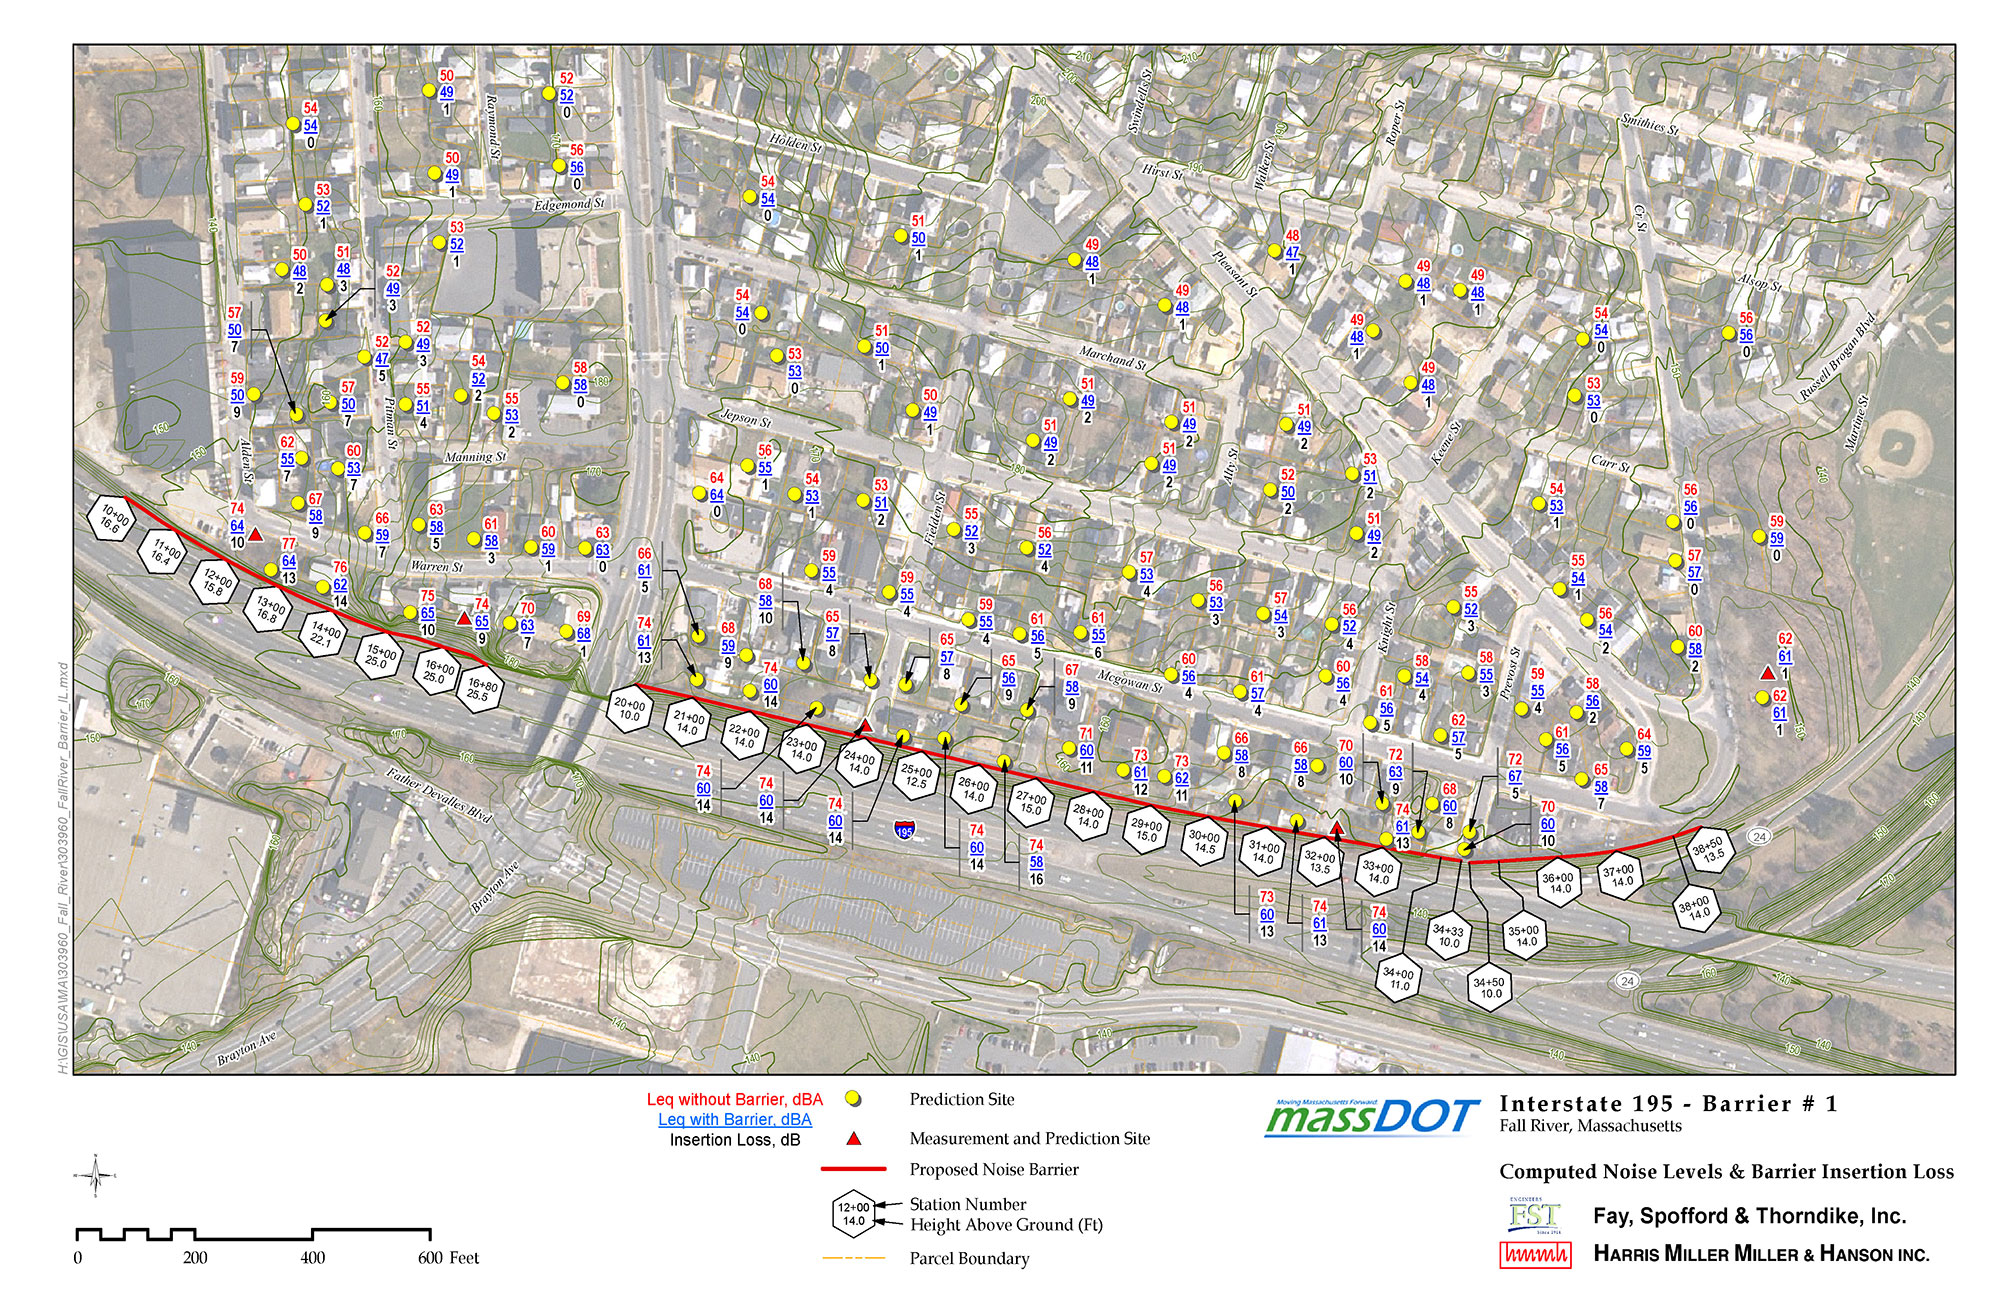 MassDOT I-195 Fall River Noise Abatement Design Study